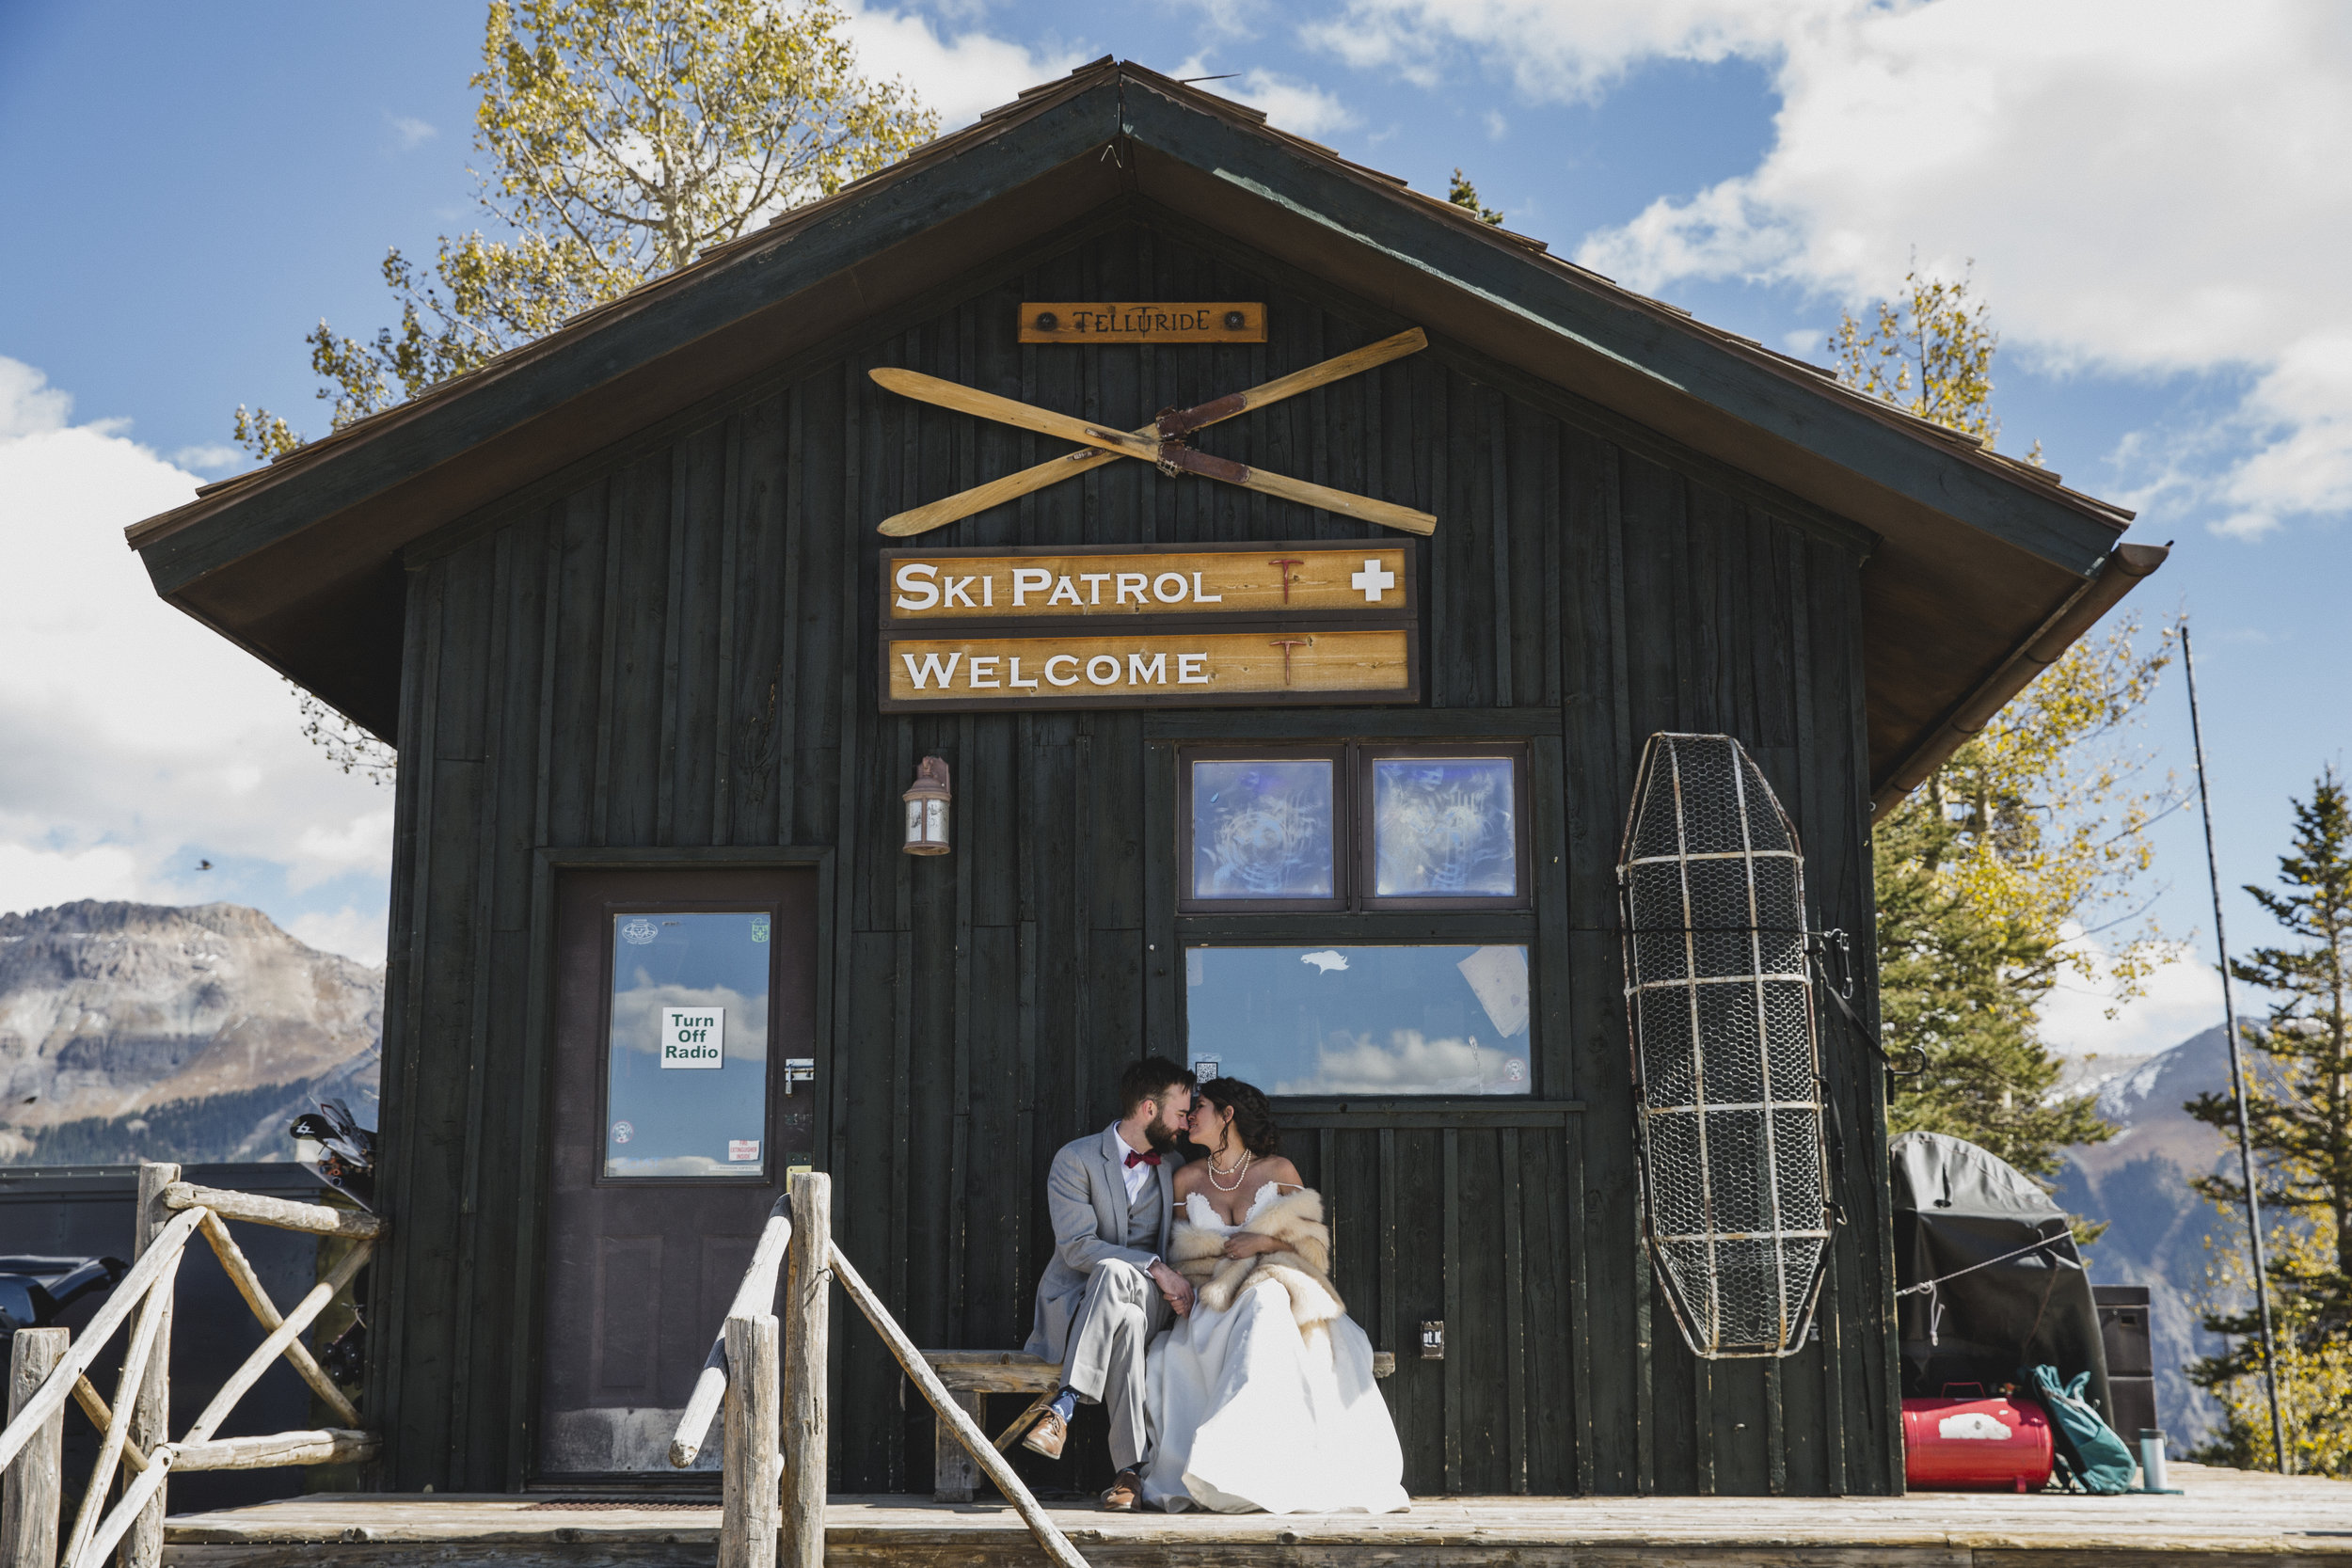 NE-LeahandAshtonphotography-Telluride-Wedding-Photography-9122.jpg